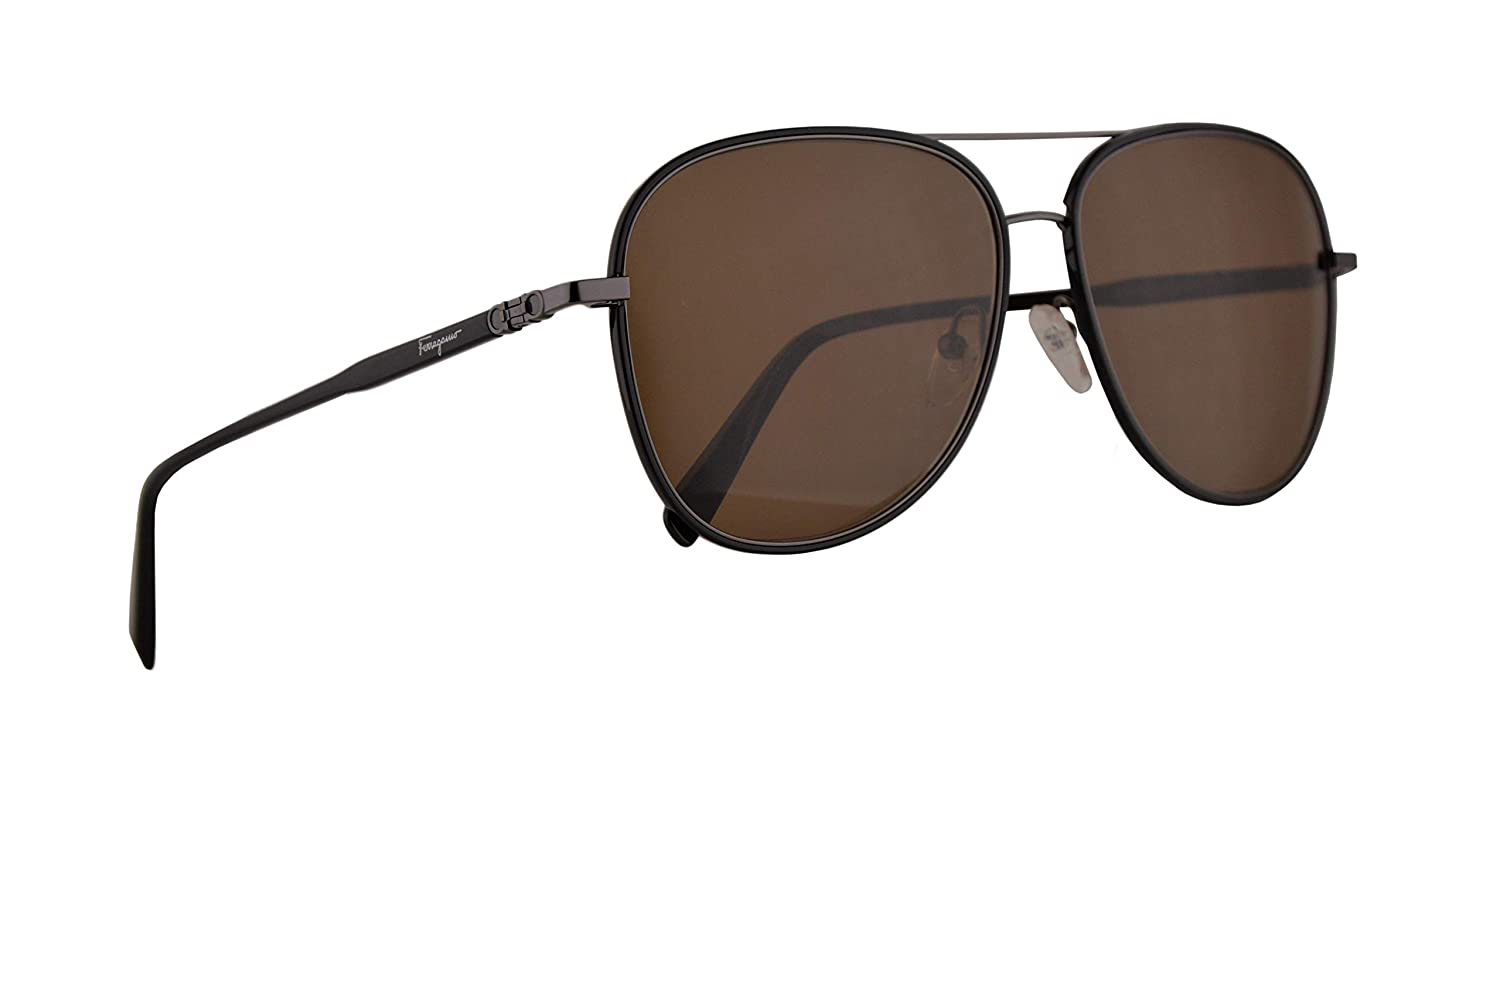 f8f6a2f046 Amazon.com  Salvatore Ferragamo SF181S Sunglasses Black w Brown Lens 60mm  001 SF 181S  Clothing